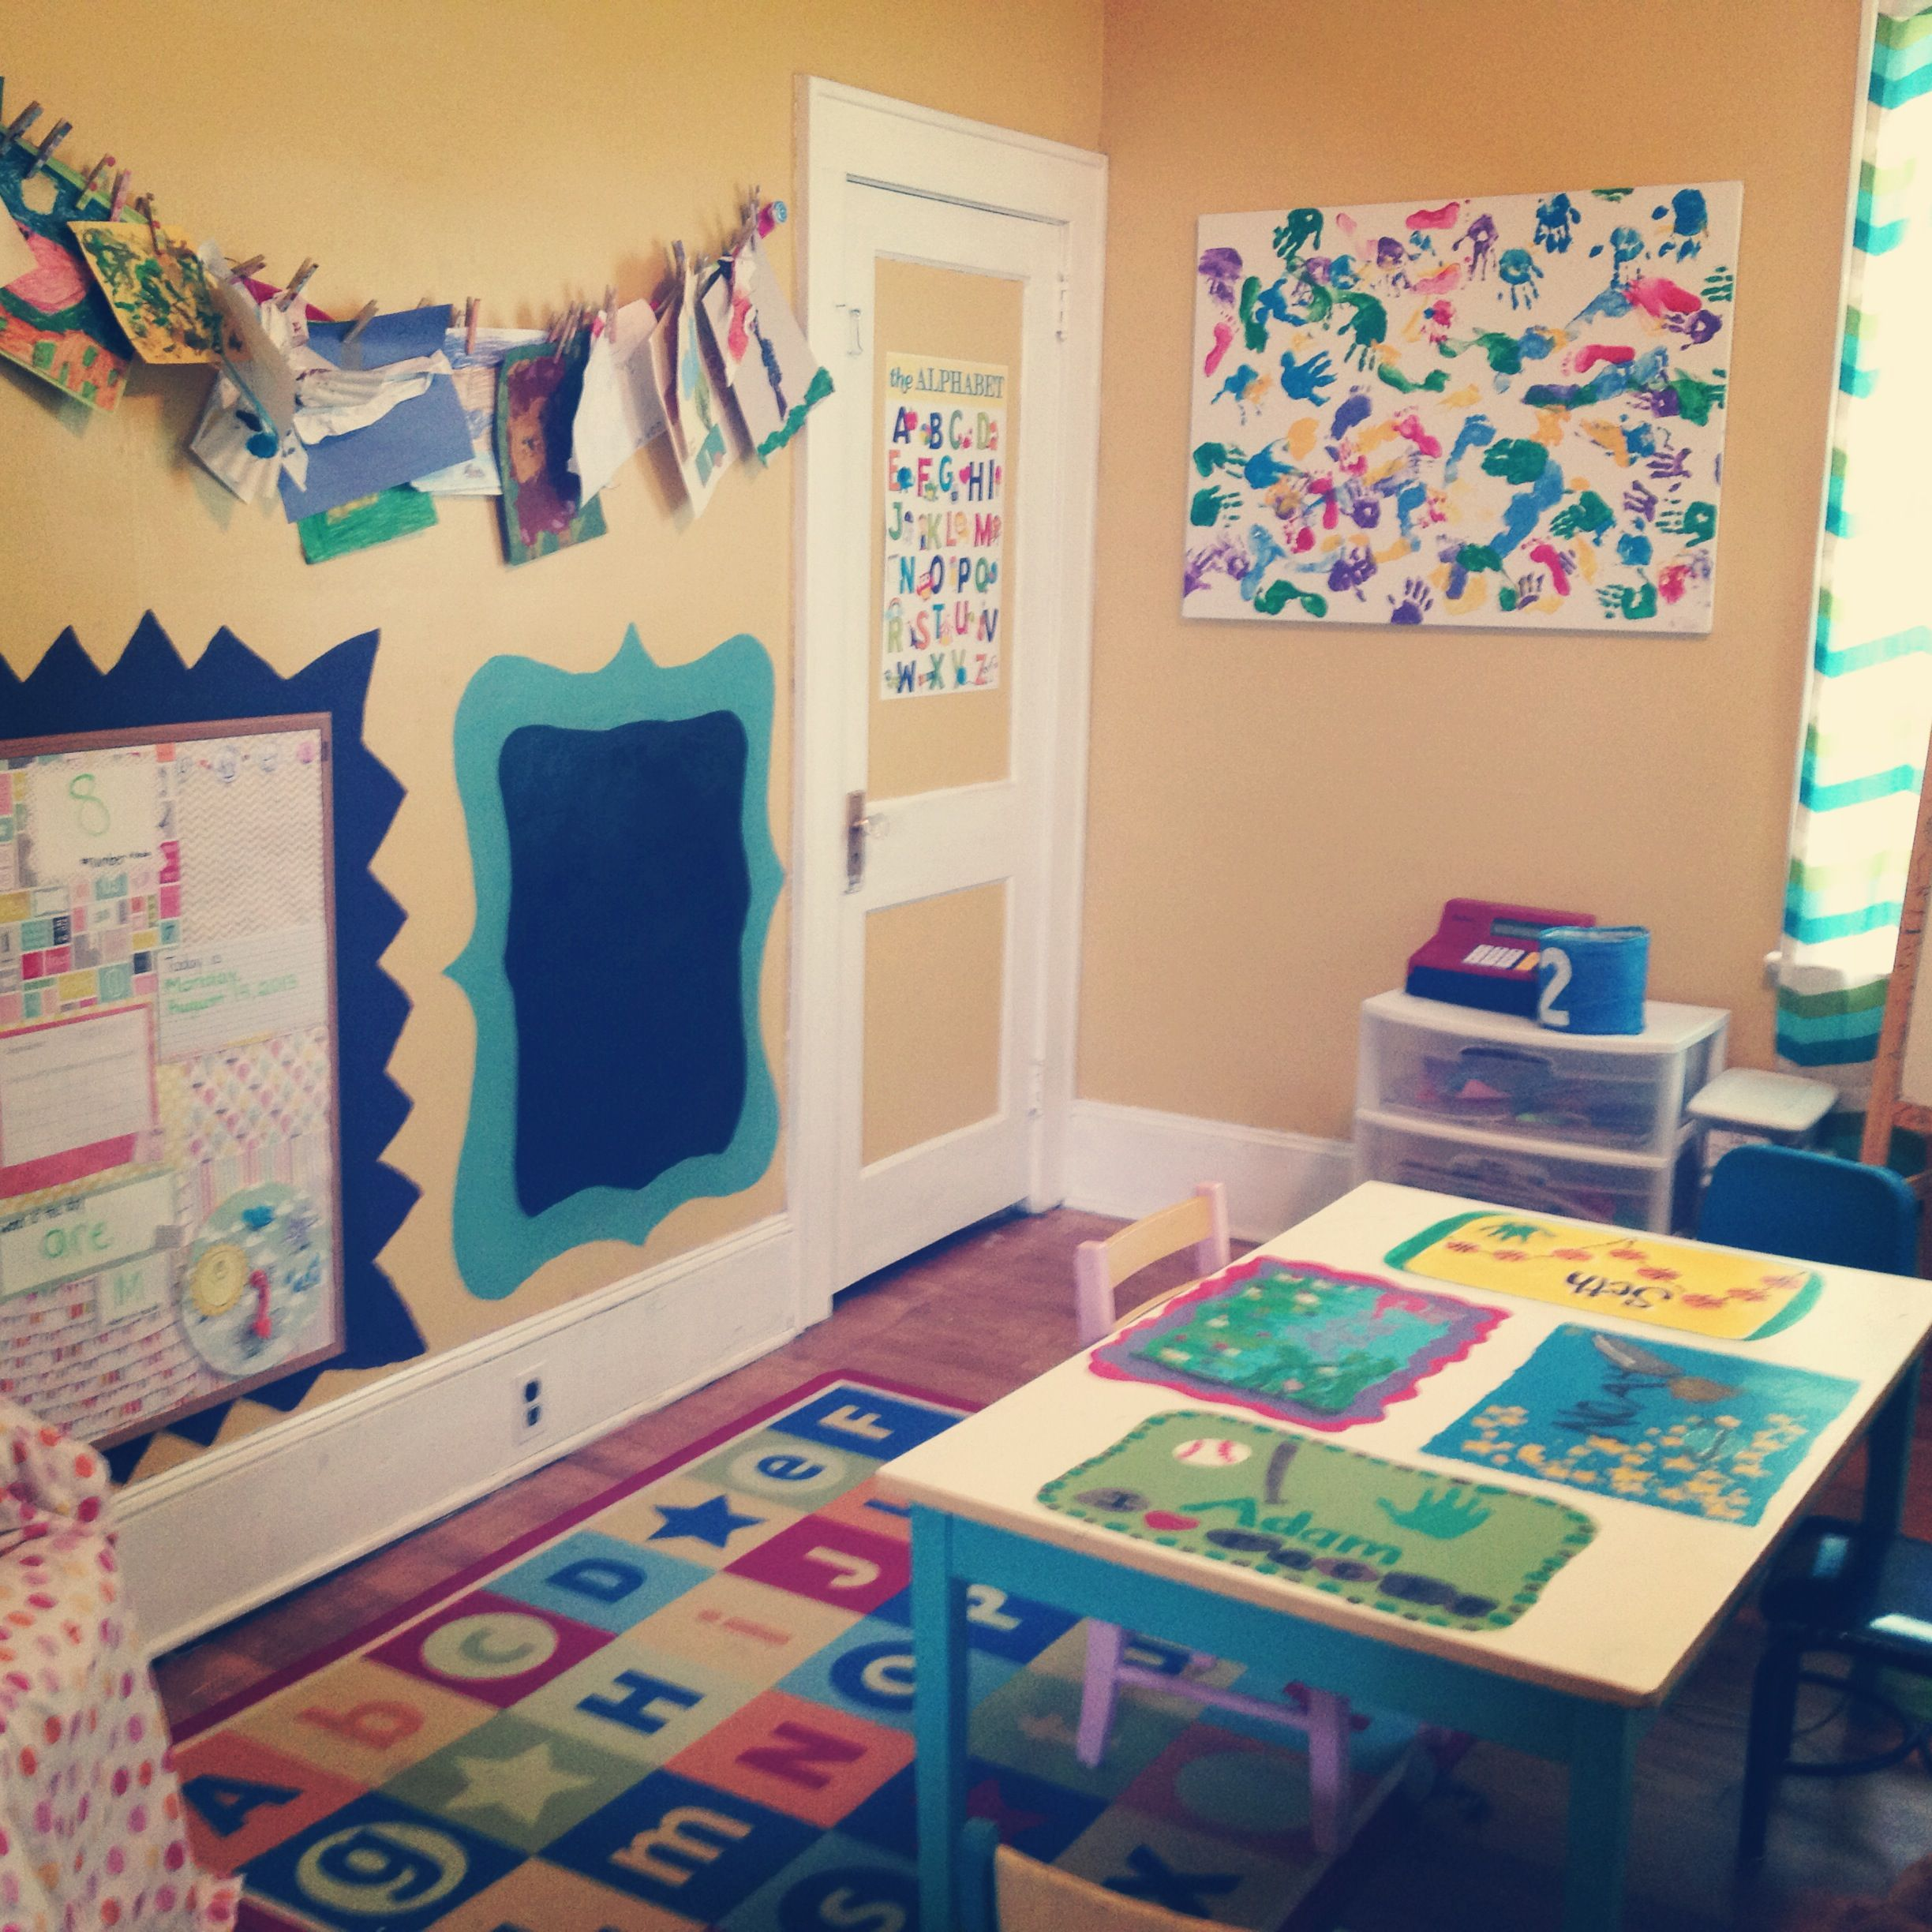 Home Daycare Design Ideas: School Room...just Beautiful!